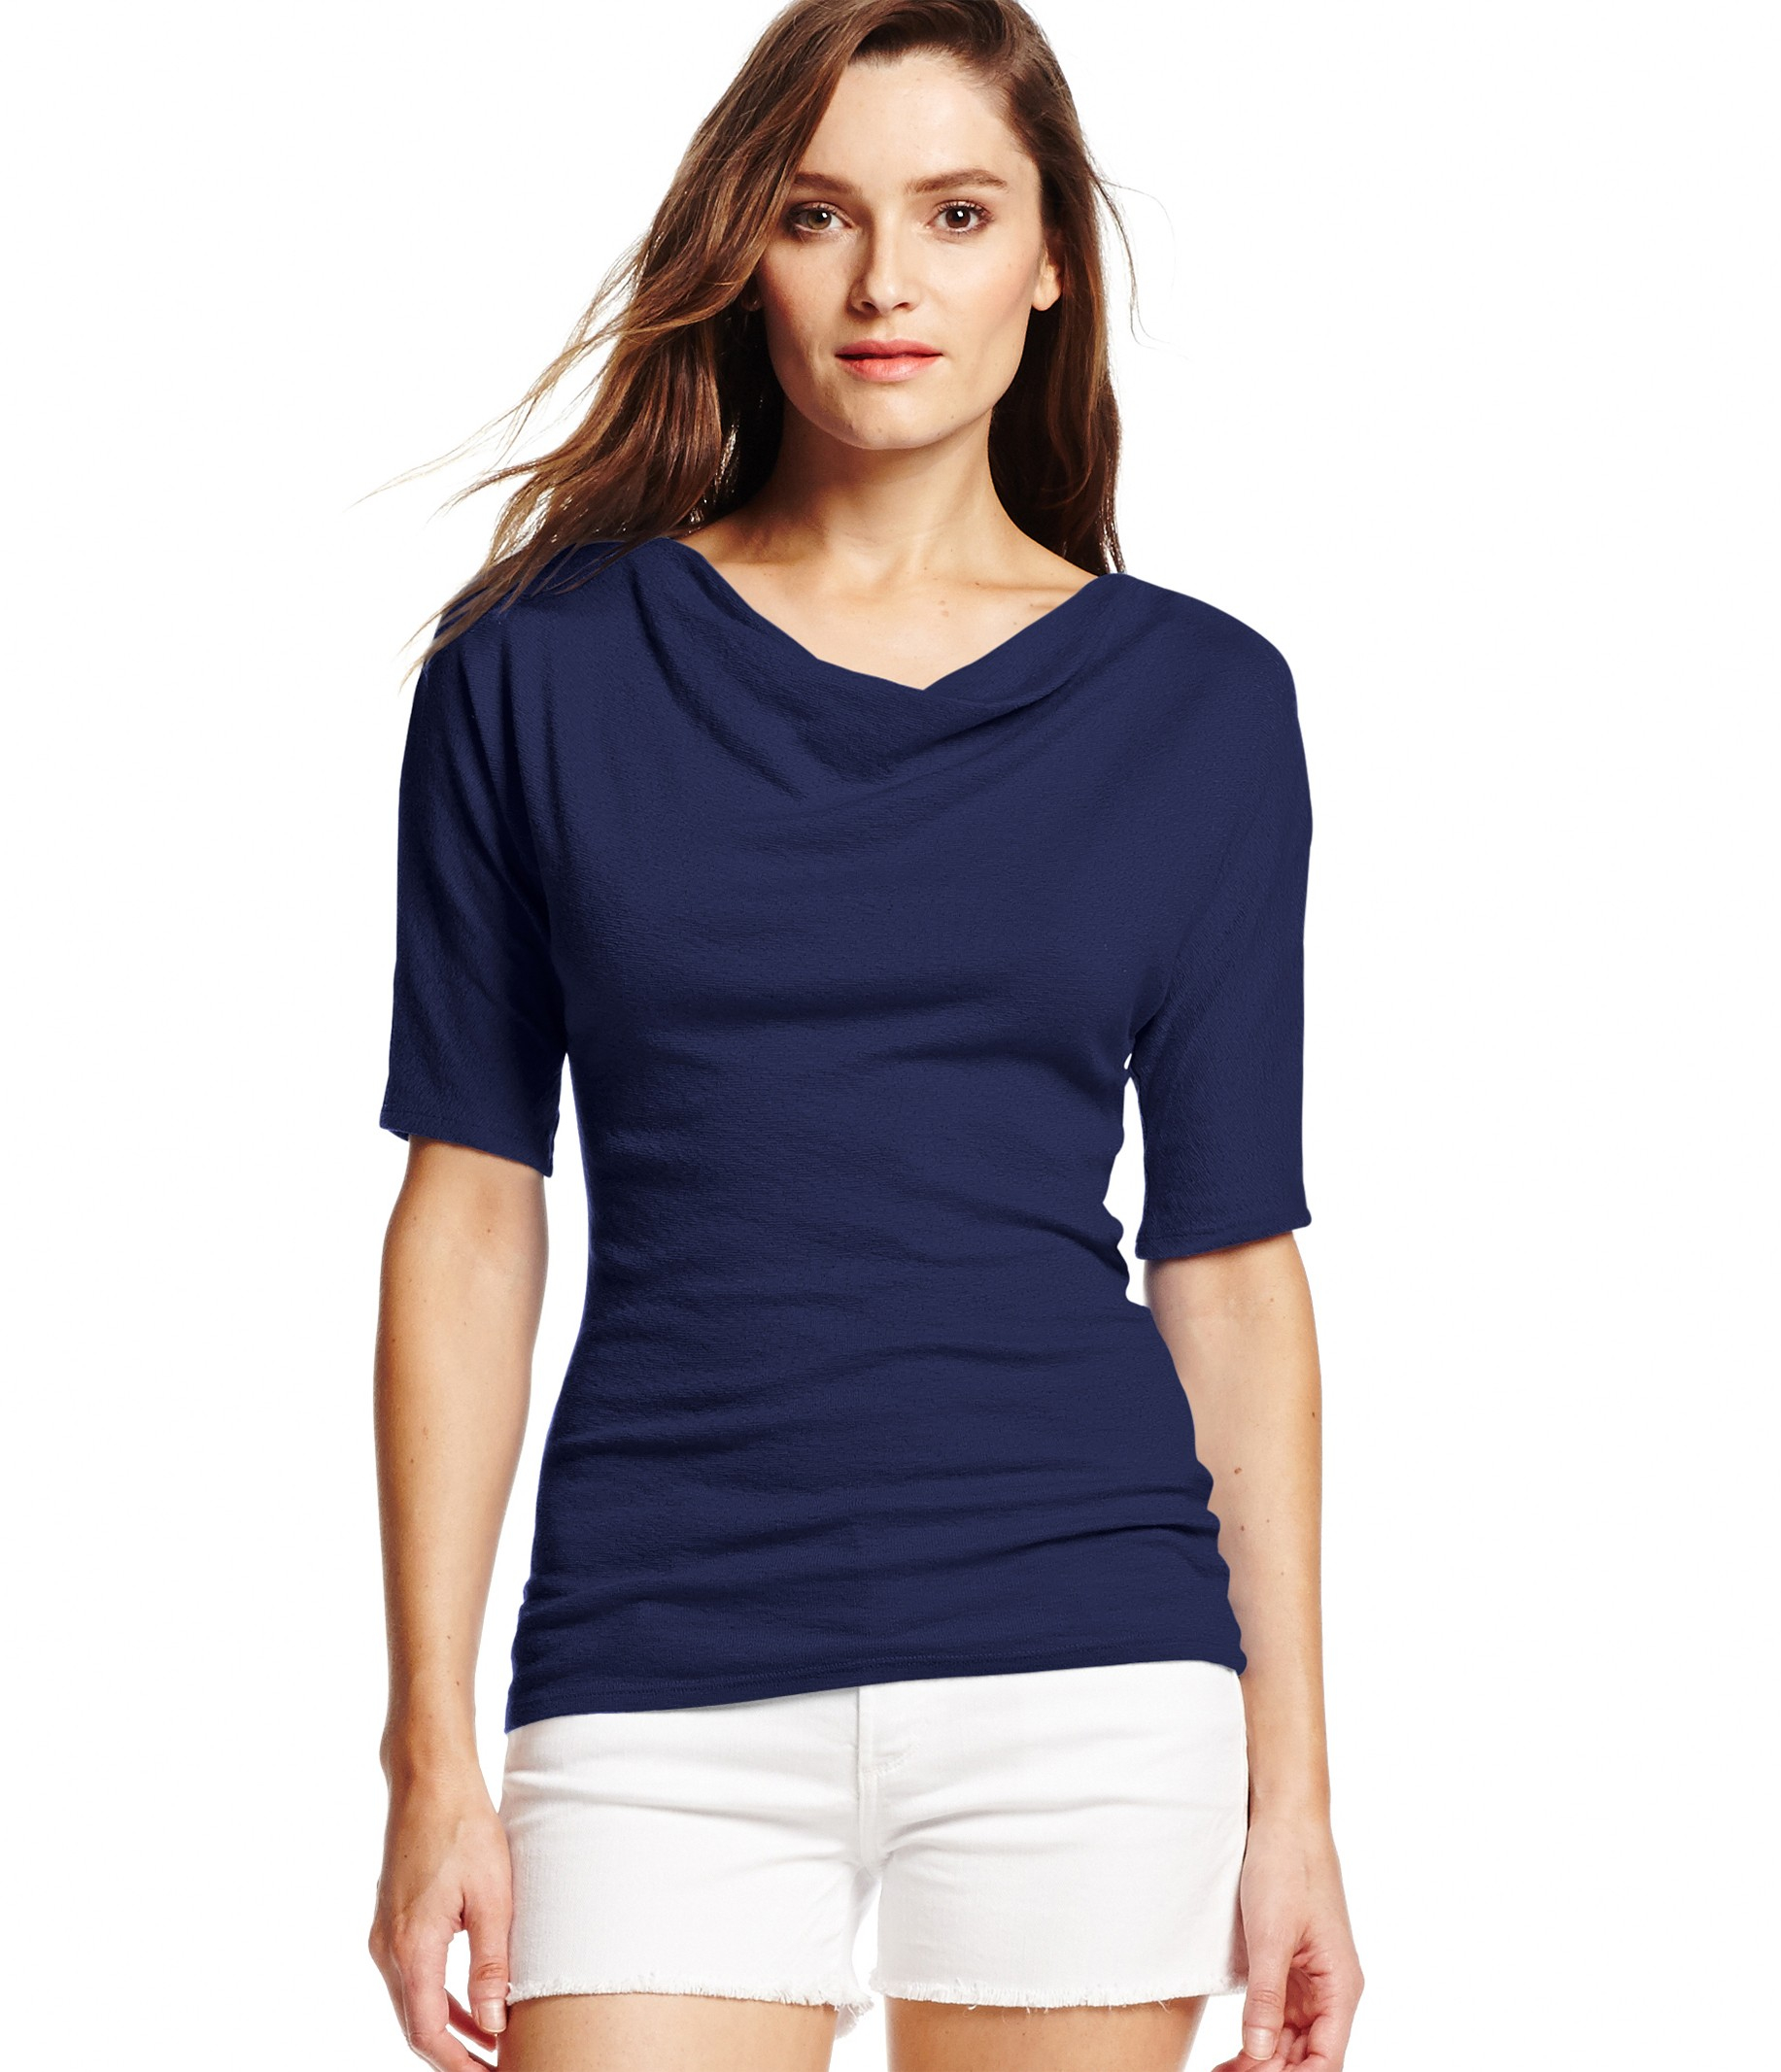 Michael stars shine 3 4 sleeve drape neck top in blue for Michael stars t shirts on sale